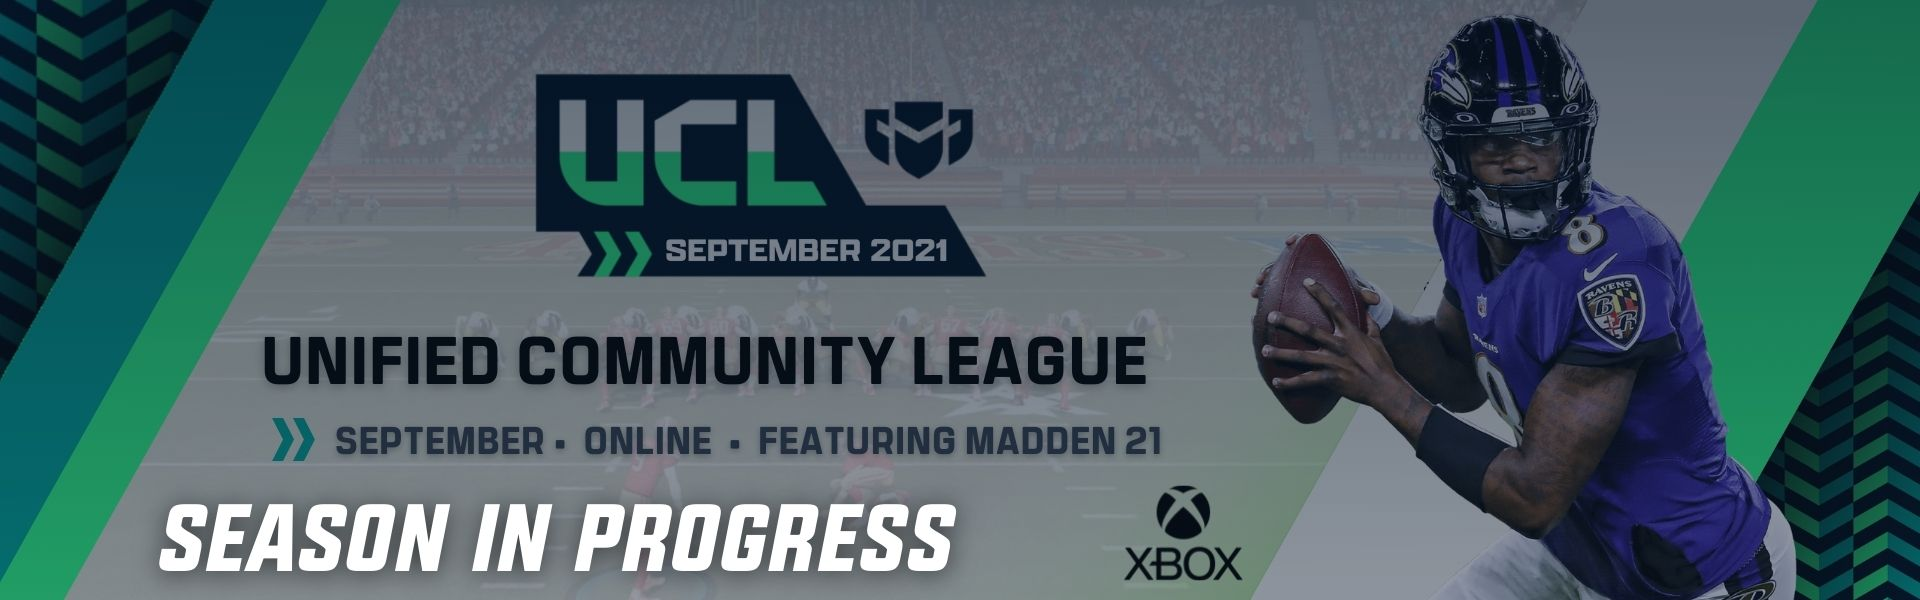 September UCL: Featuring Madden 21 – XBOX